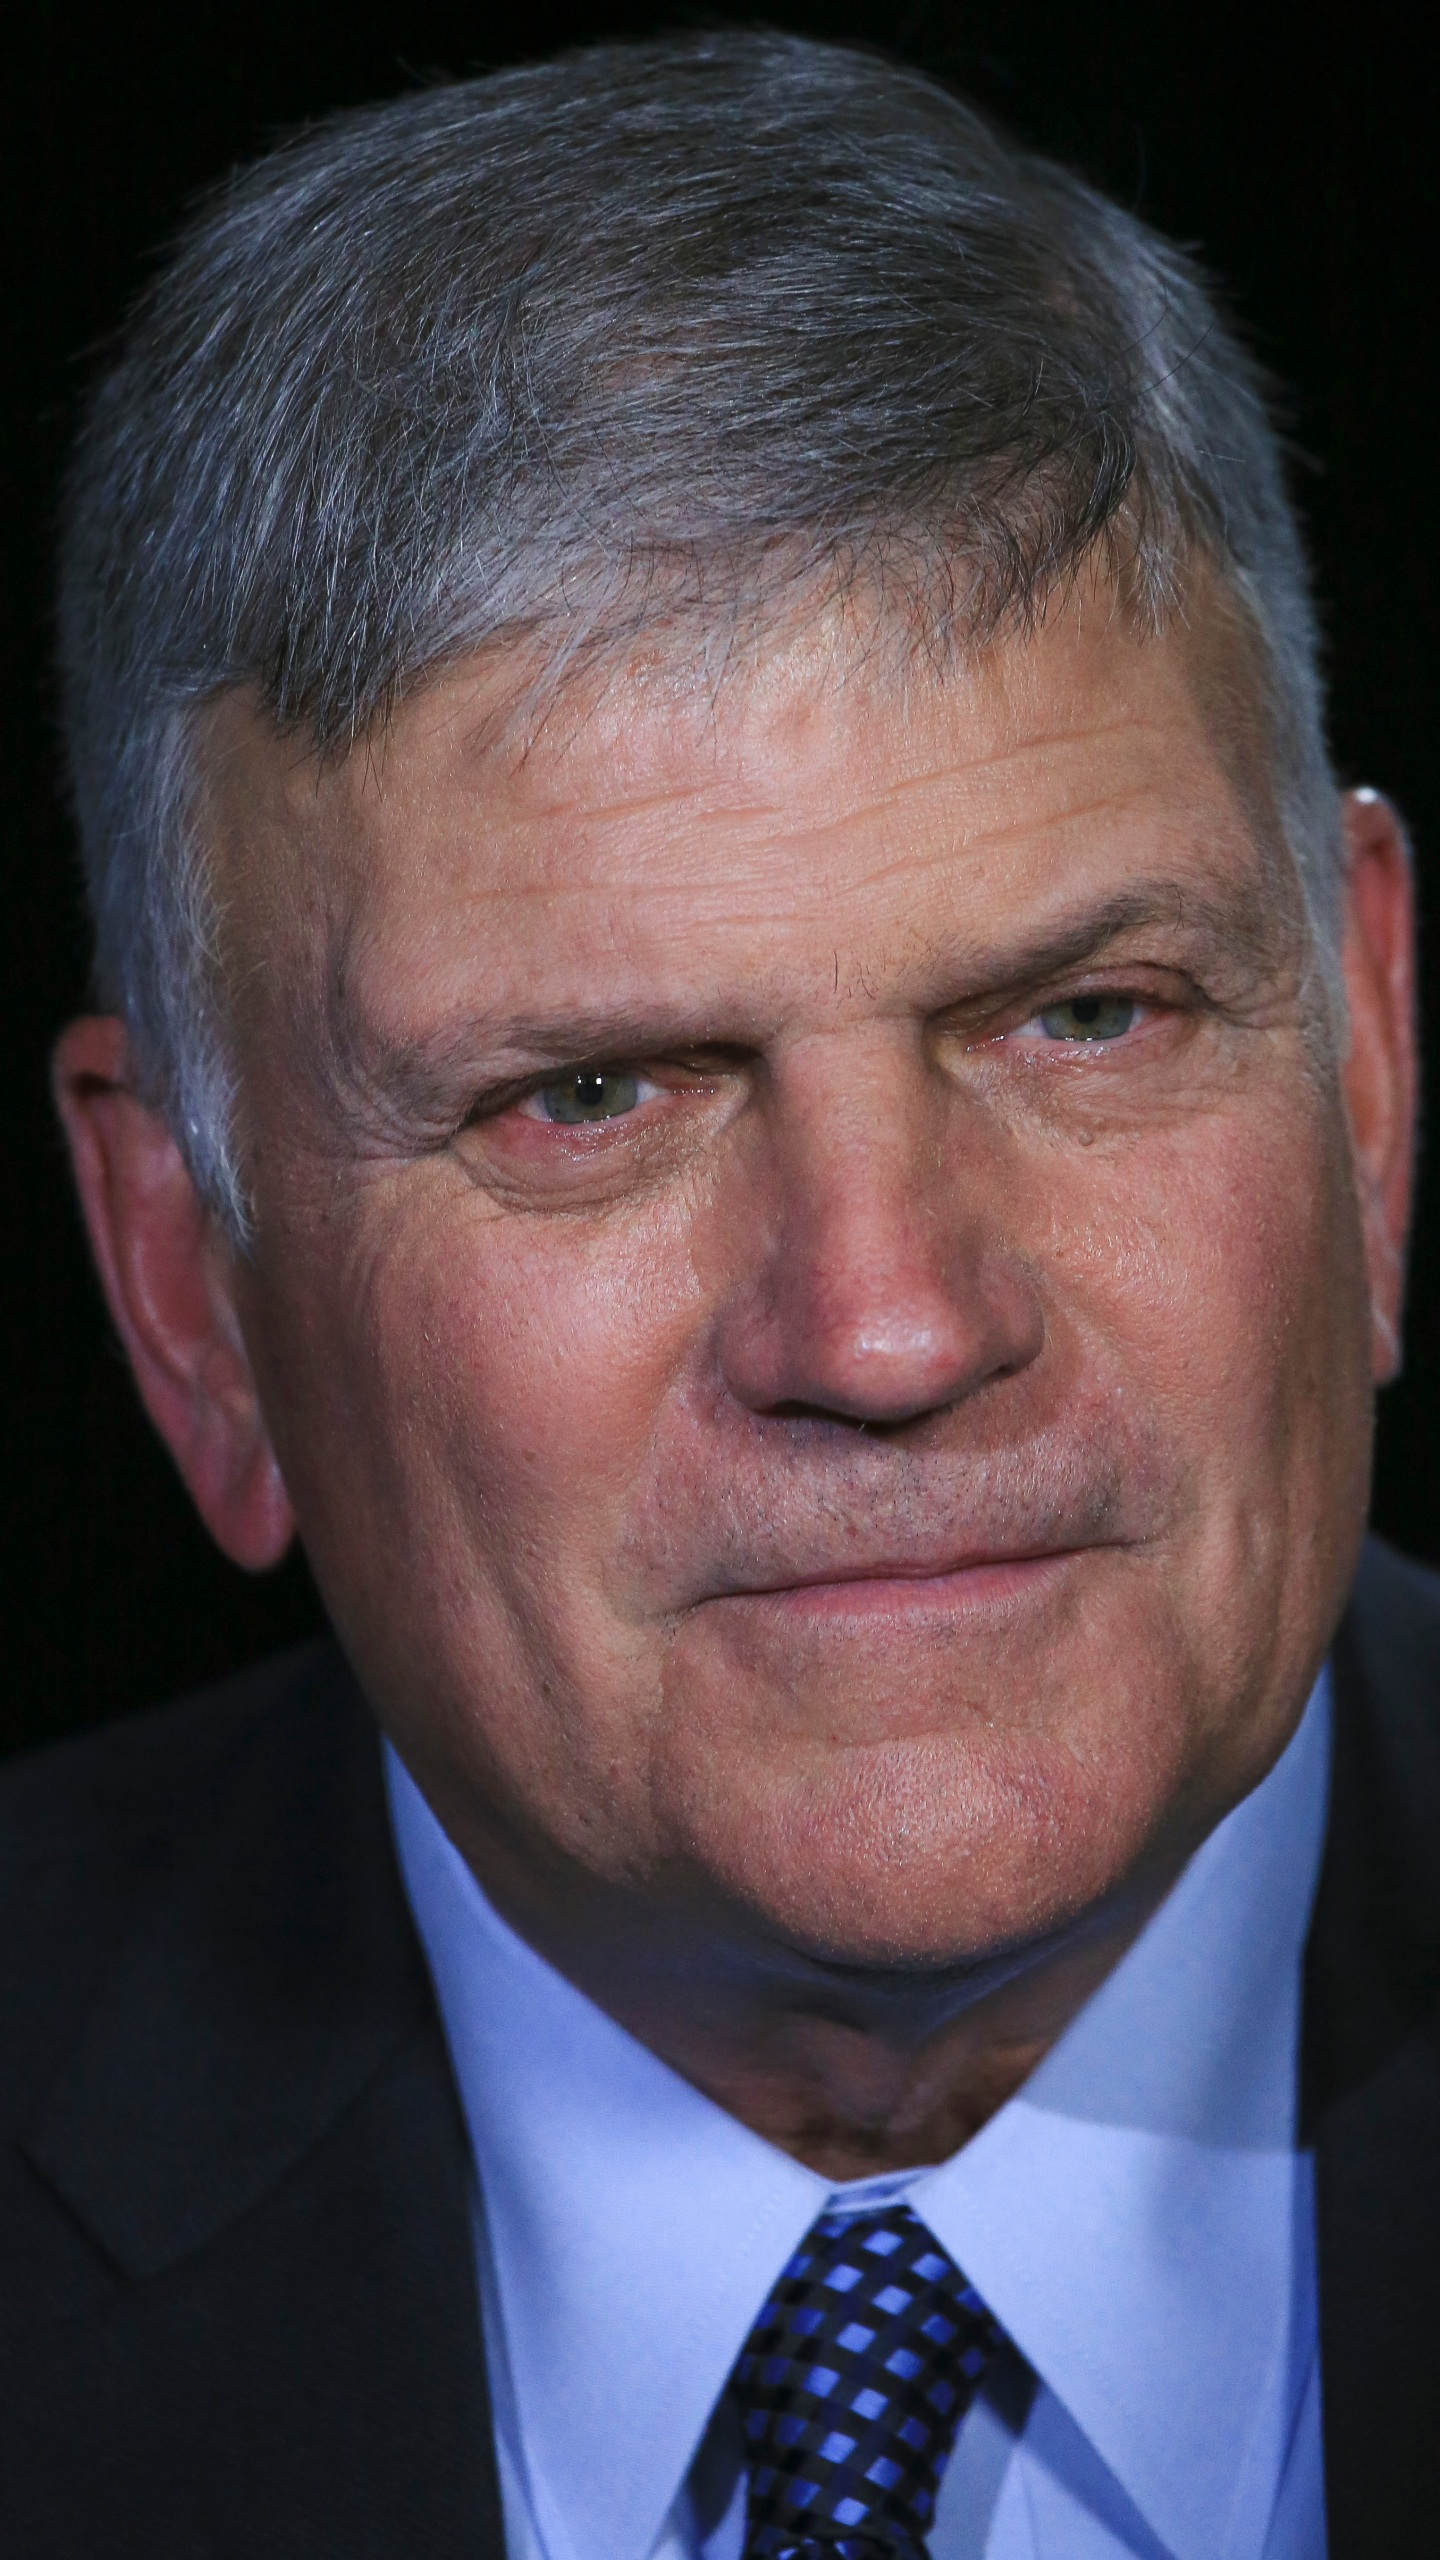 Franklin_Graham_96174-159532.jpg38709928